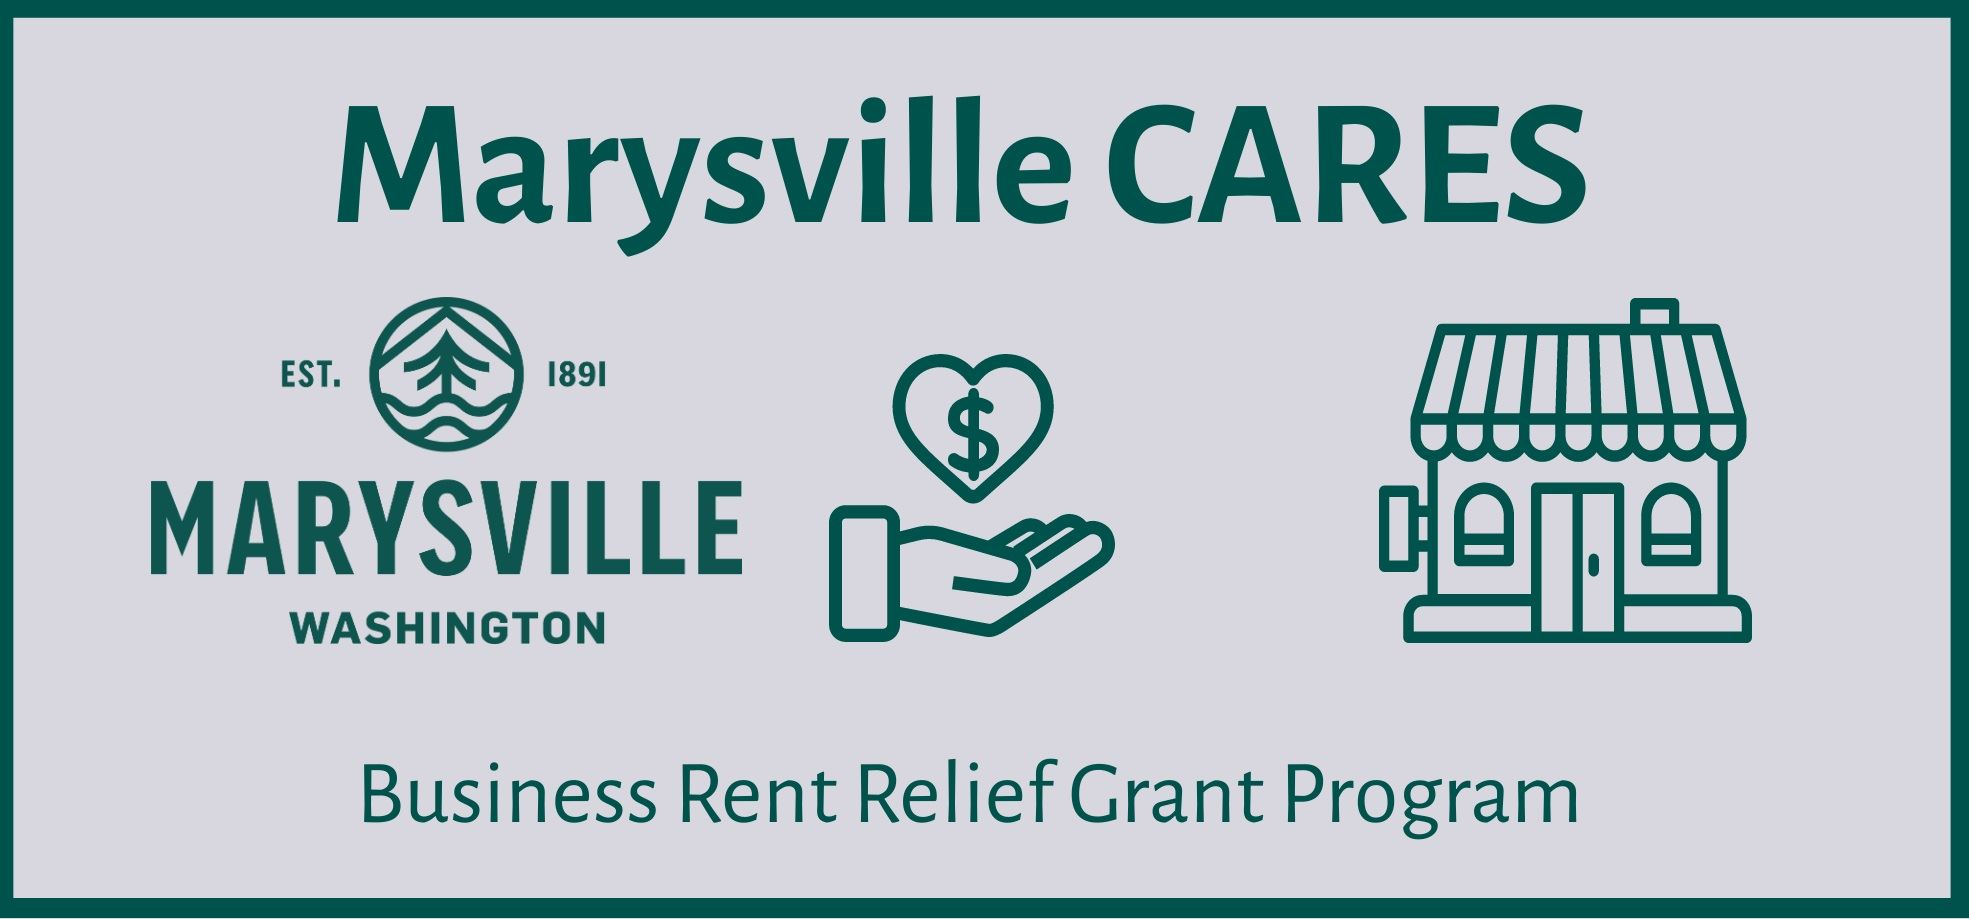 Marysville Cares Business Rent Relief Grant Program